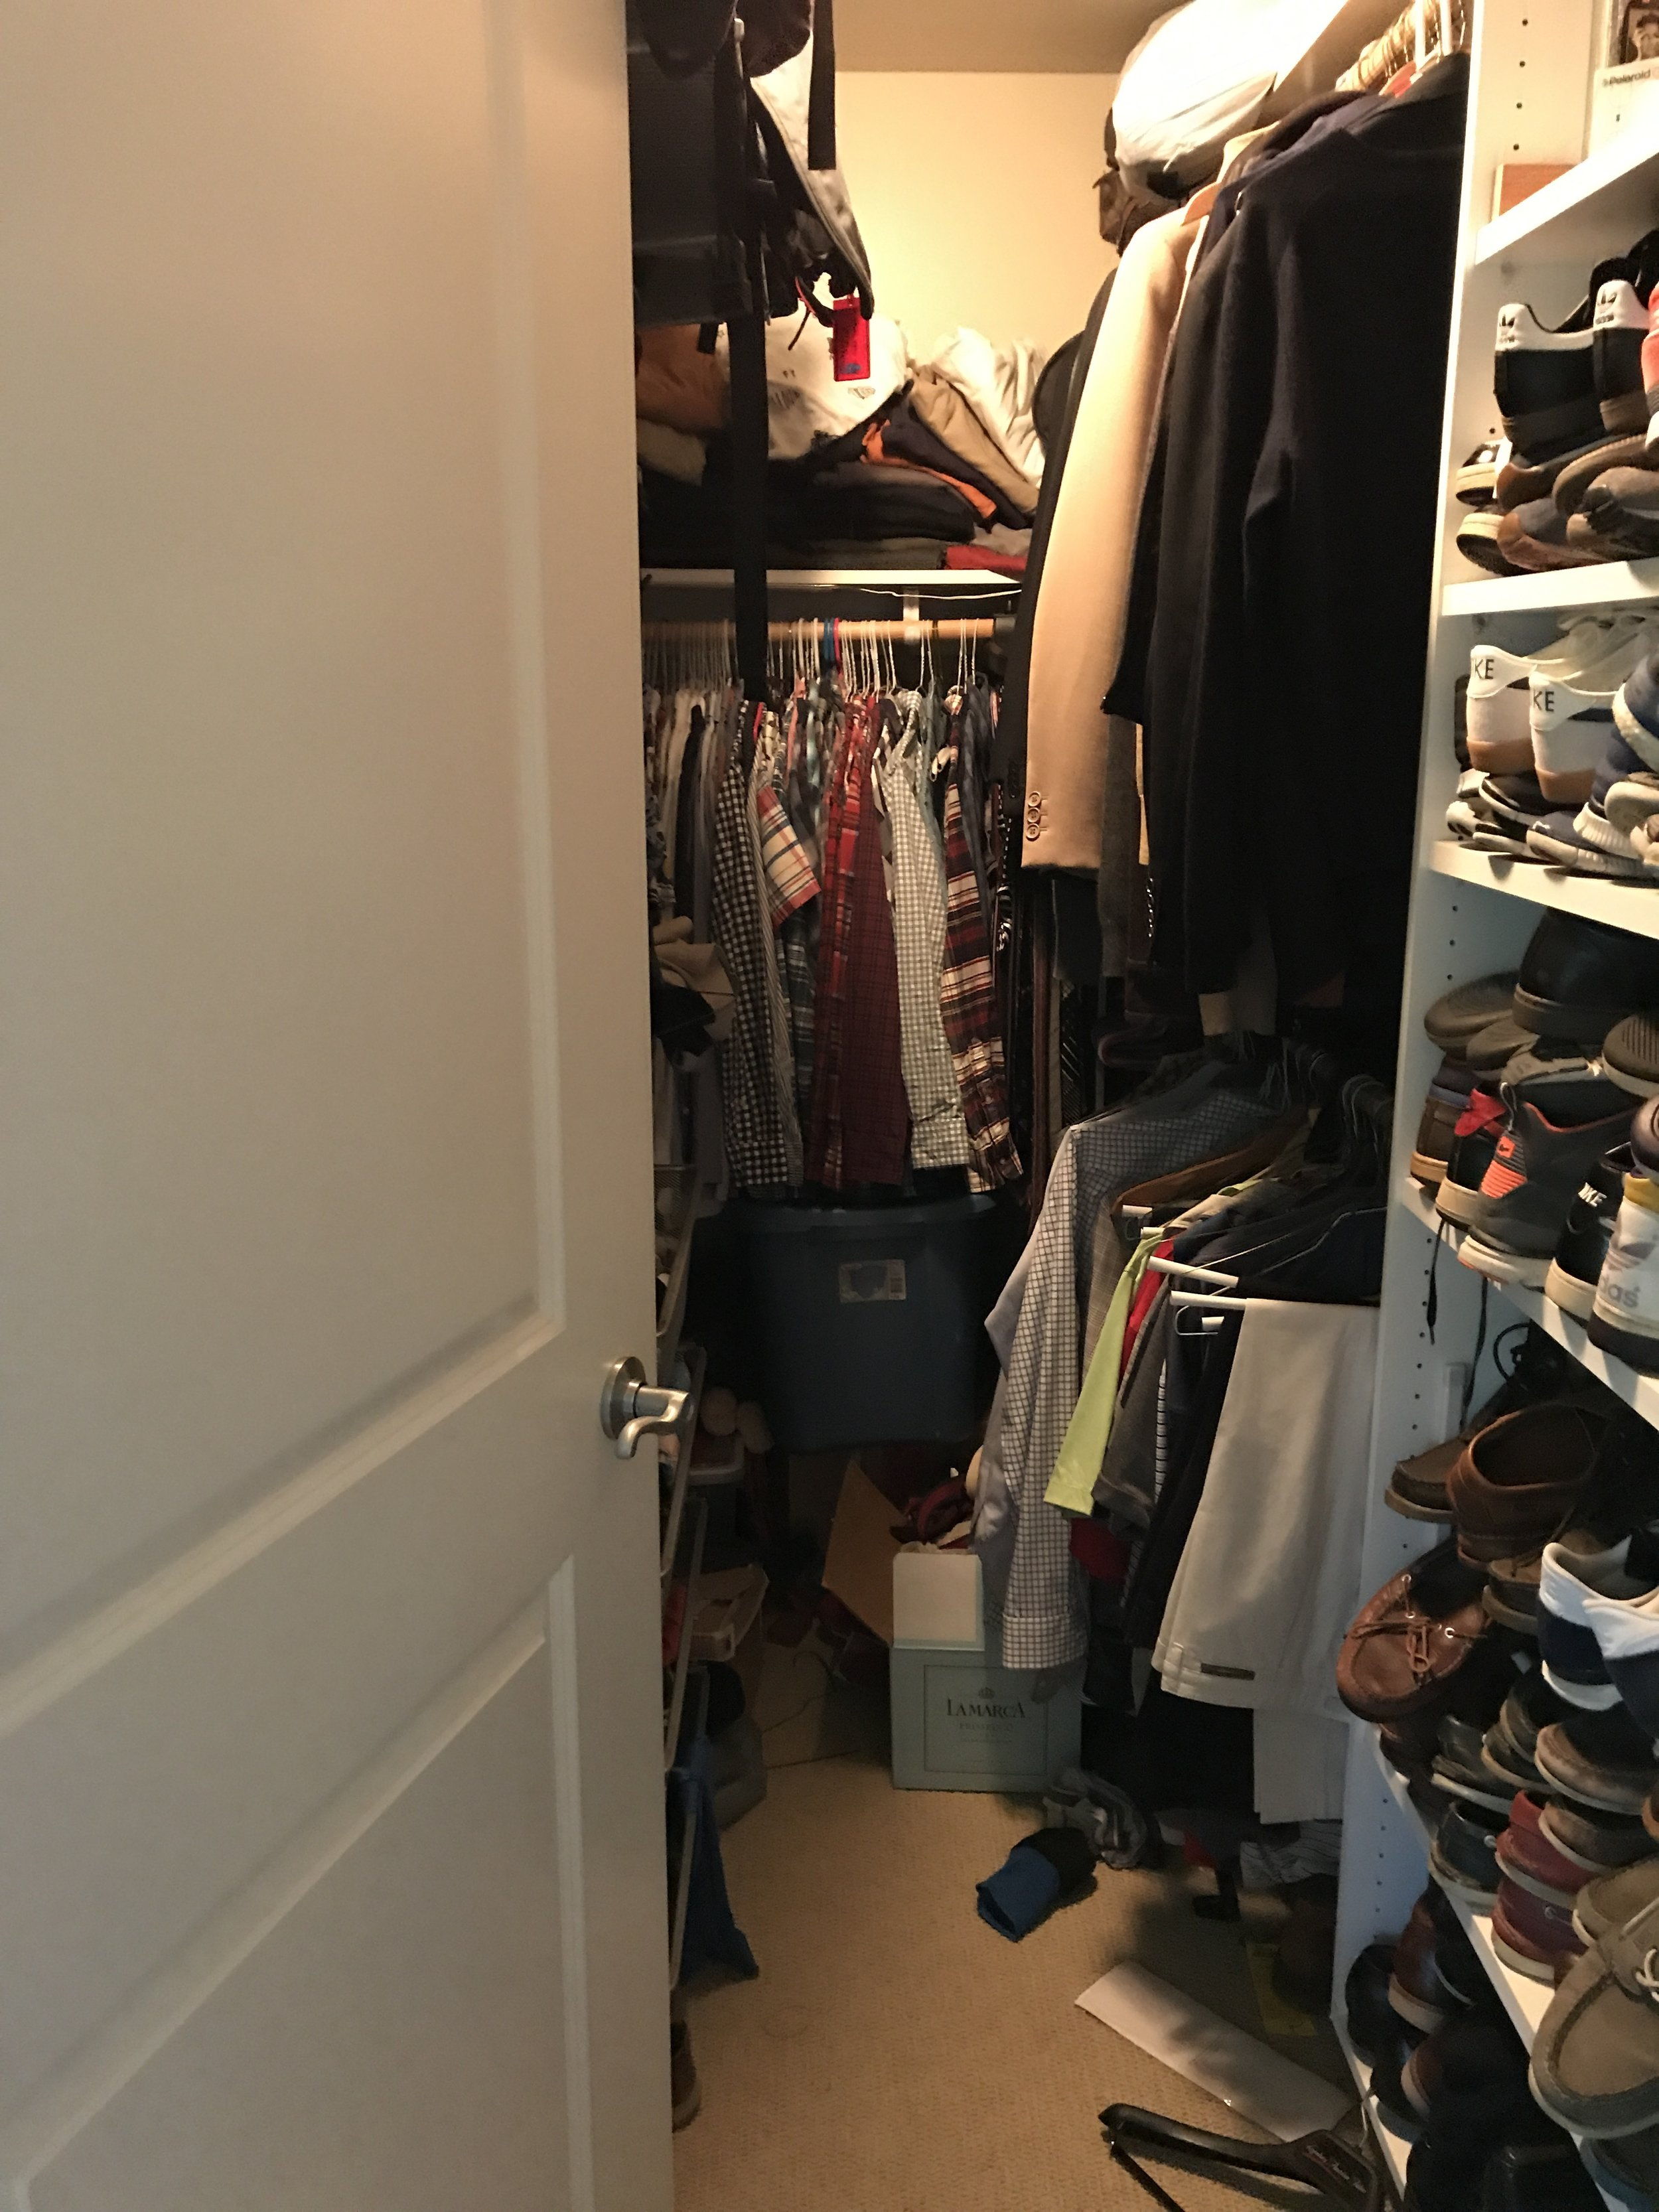 My closet Pre-KonMari.  It was an over crammed disorganized mess that gave me anxiety.